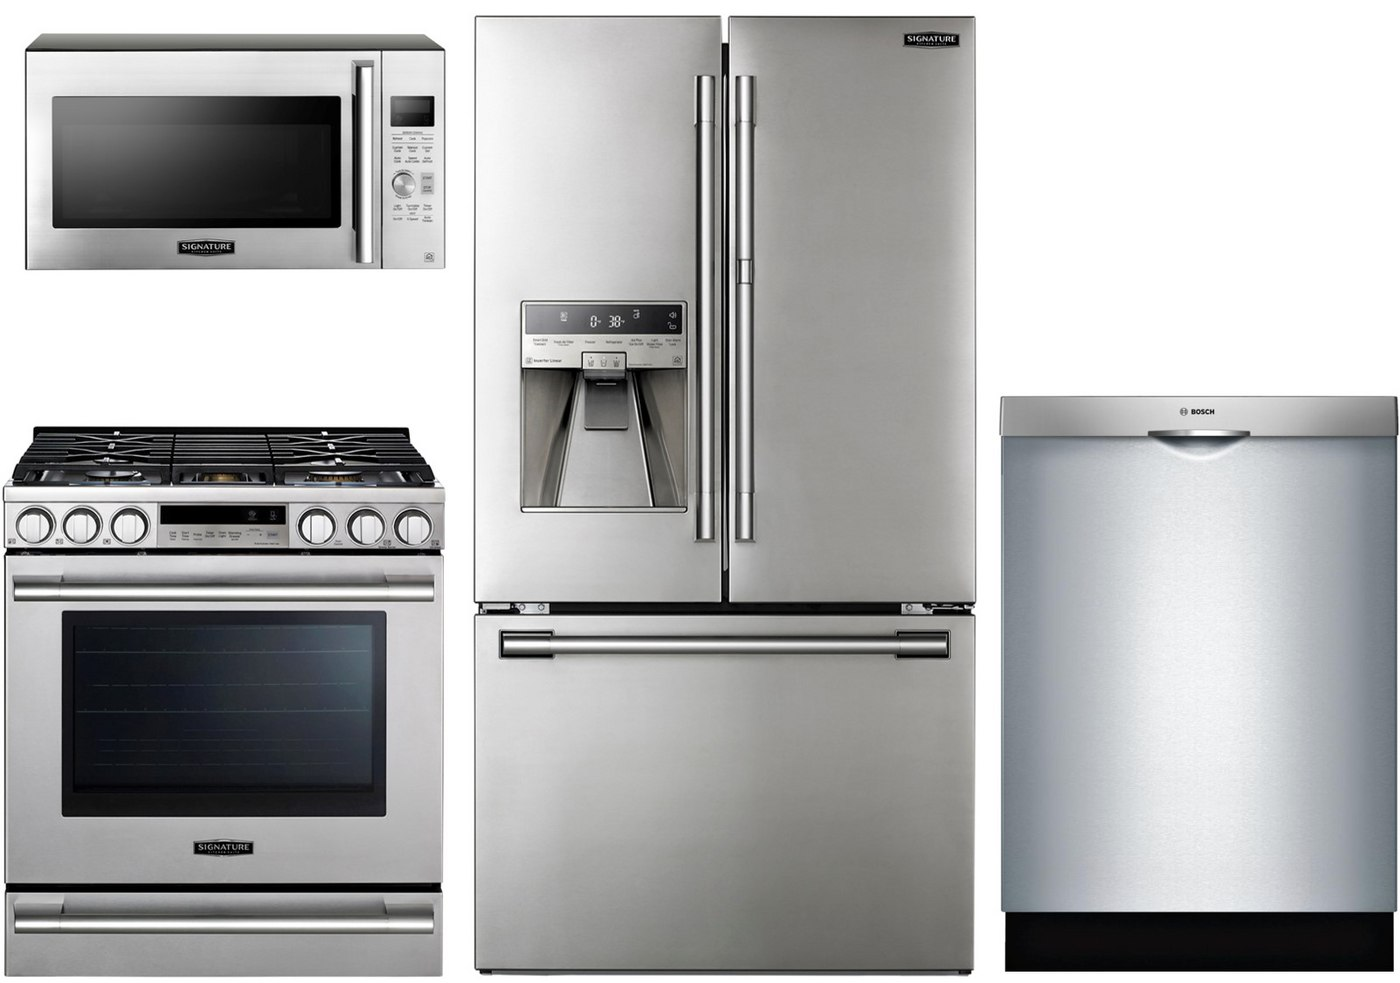 SKS Counter Depth Package with Bosch Dishwasher